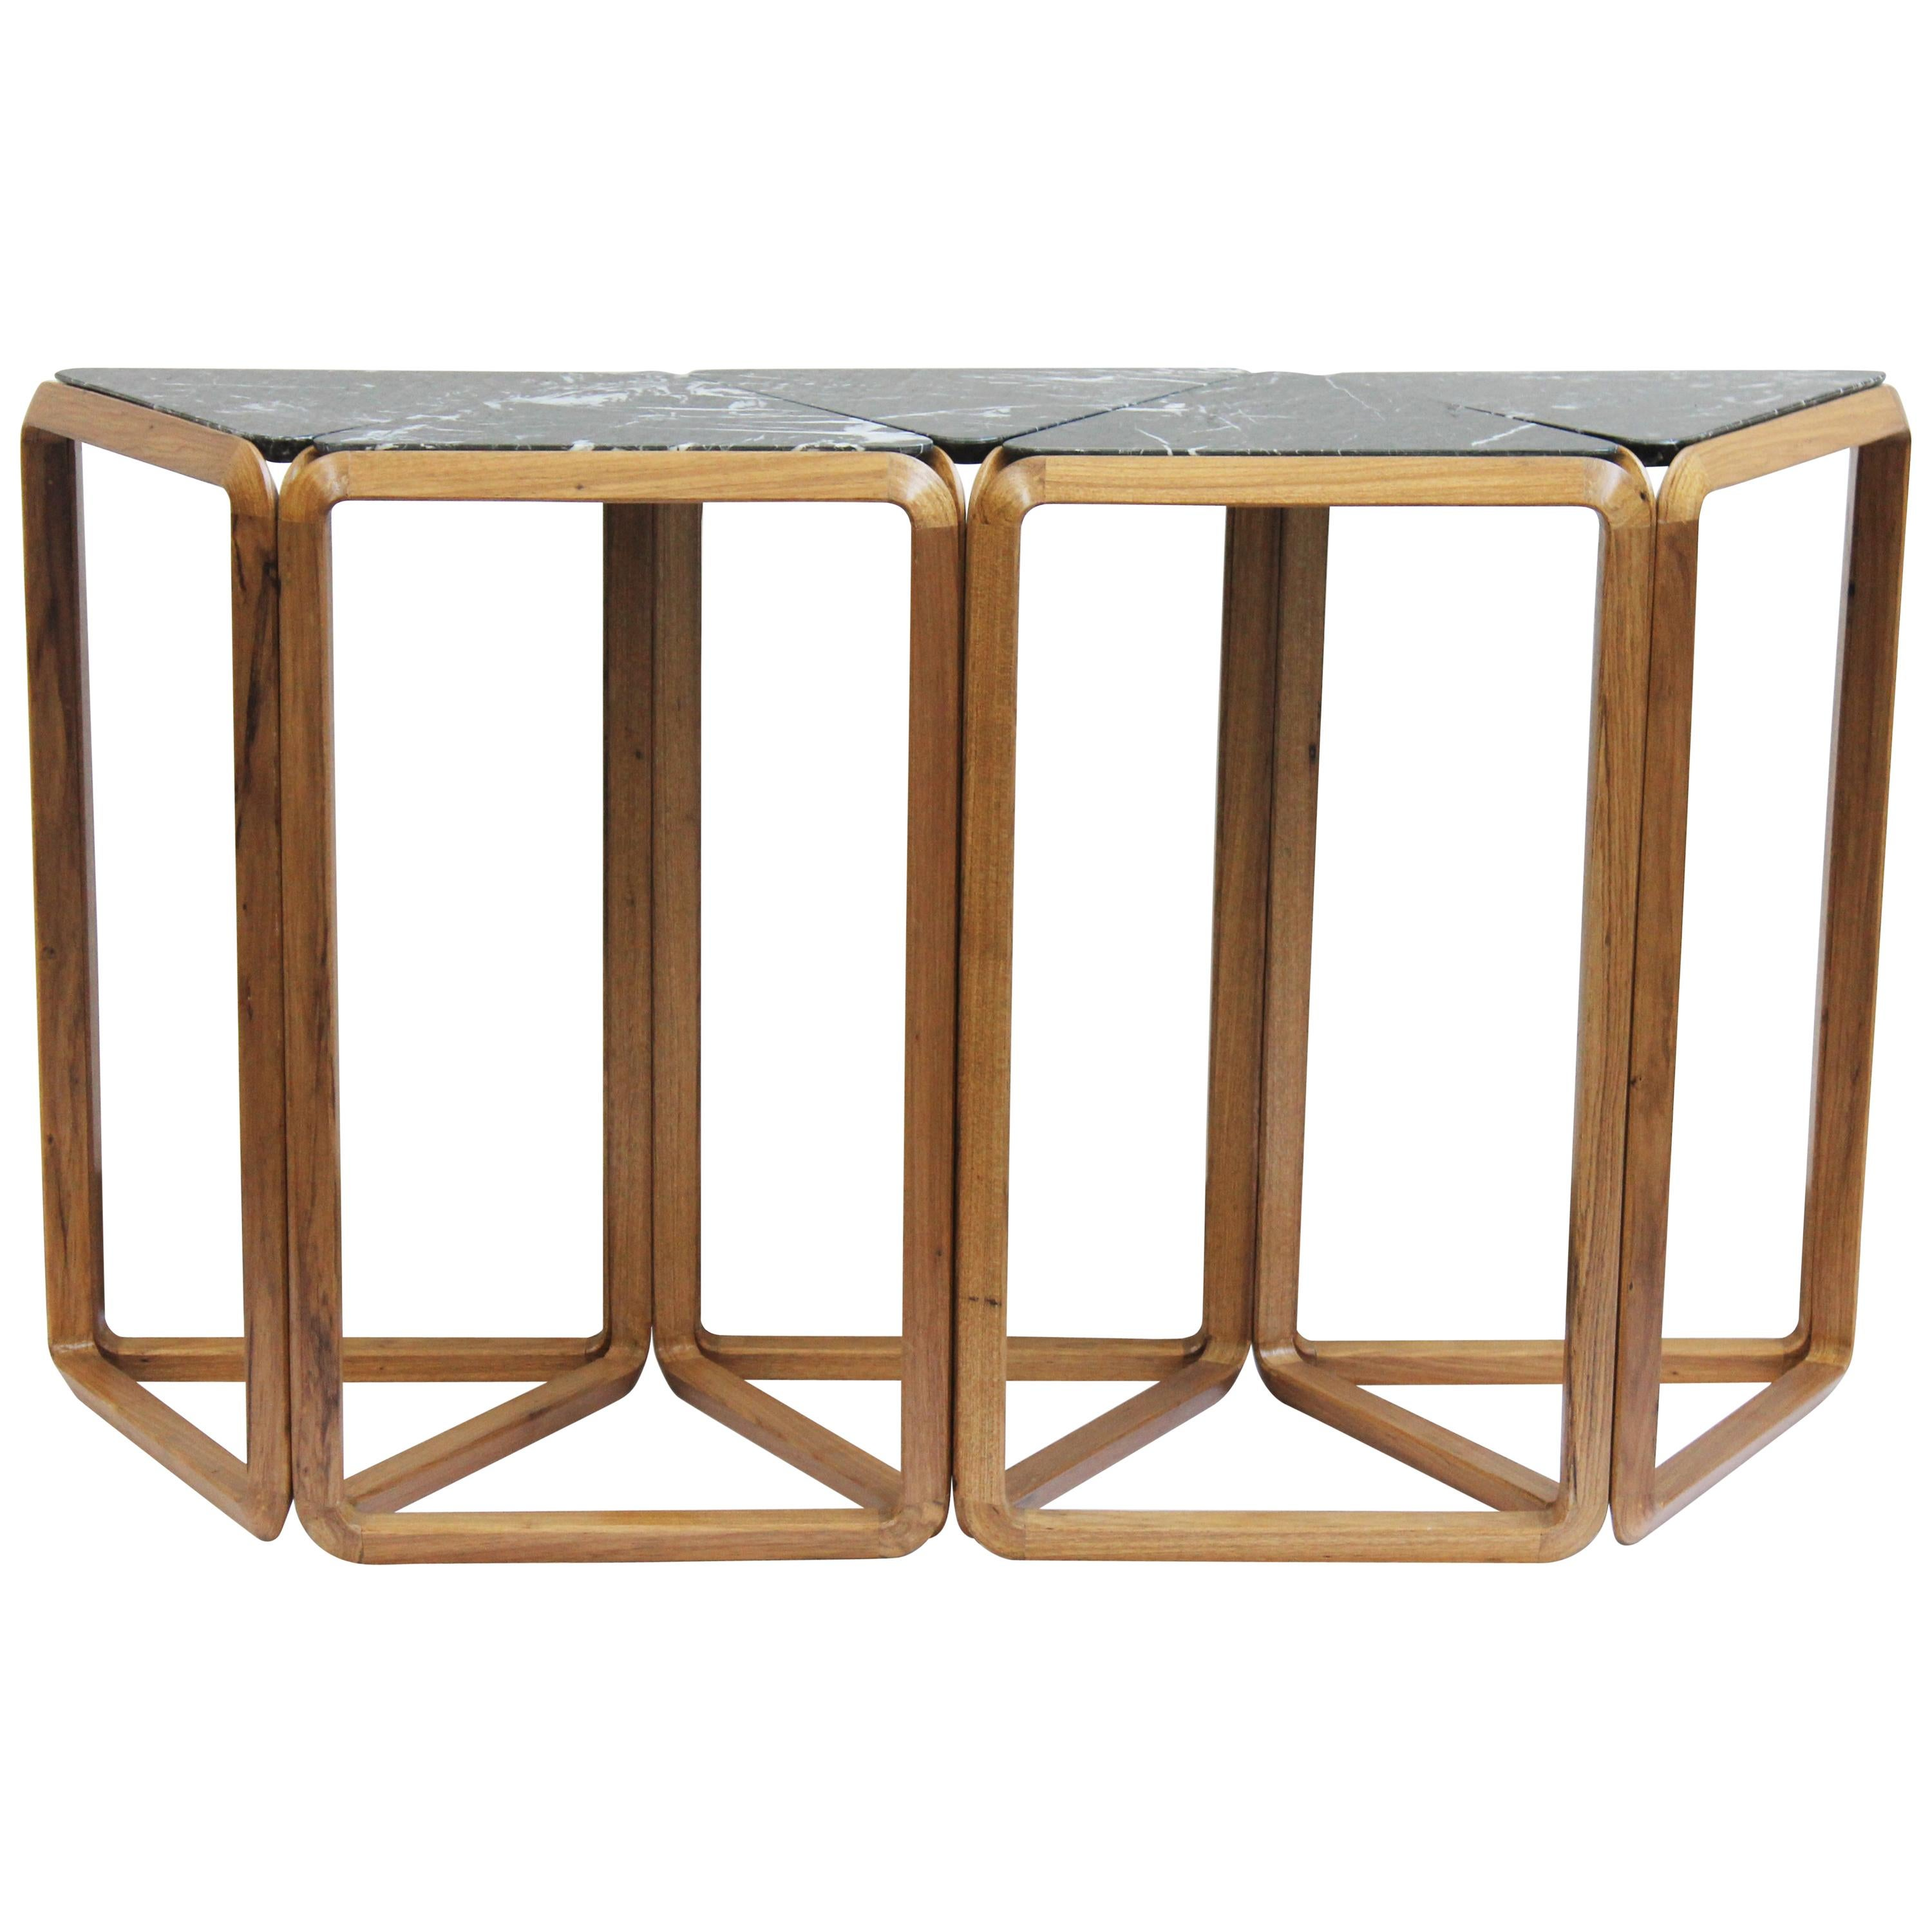 Antique and vintage console tables 7924 for sale at 1stdibs